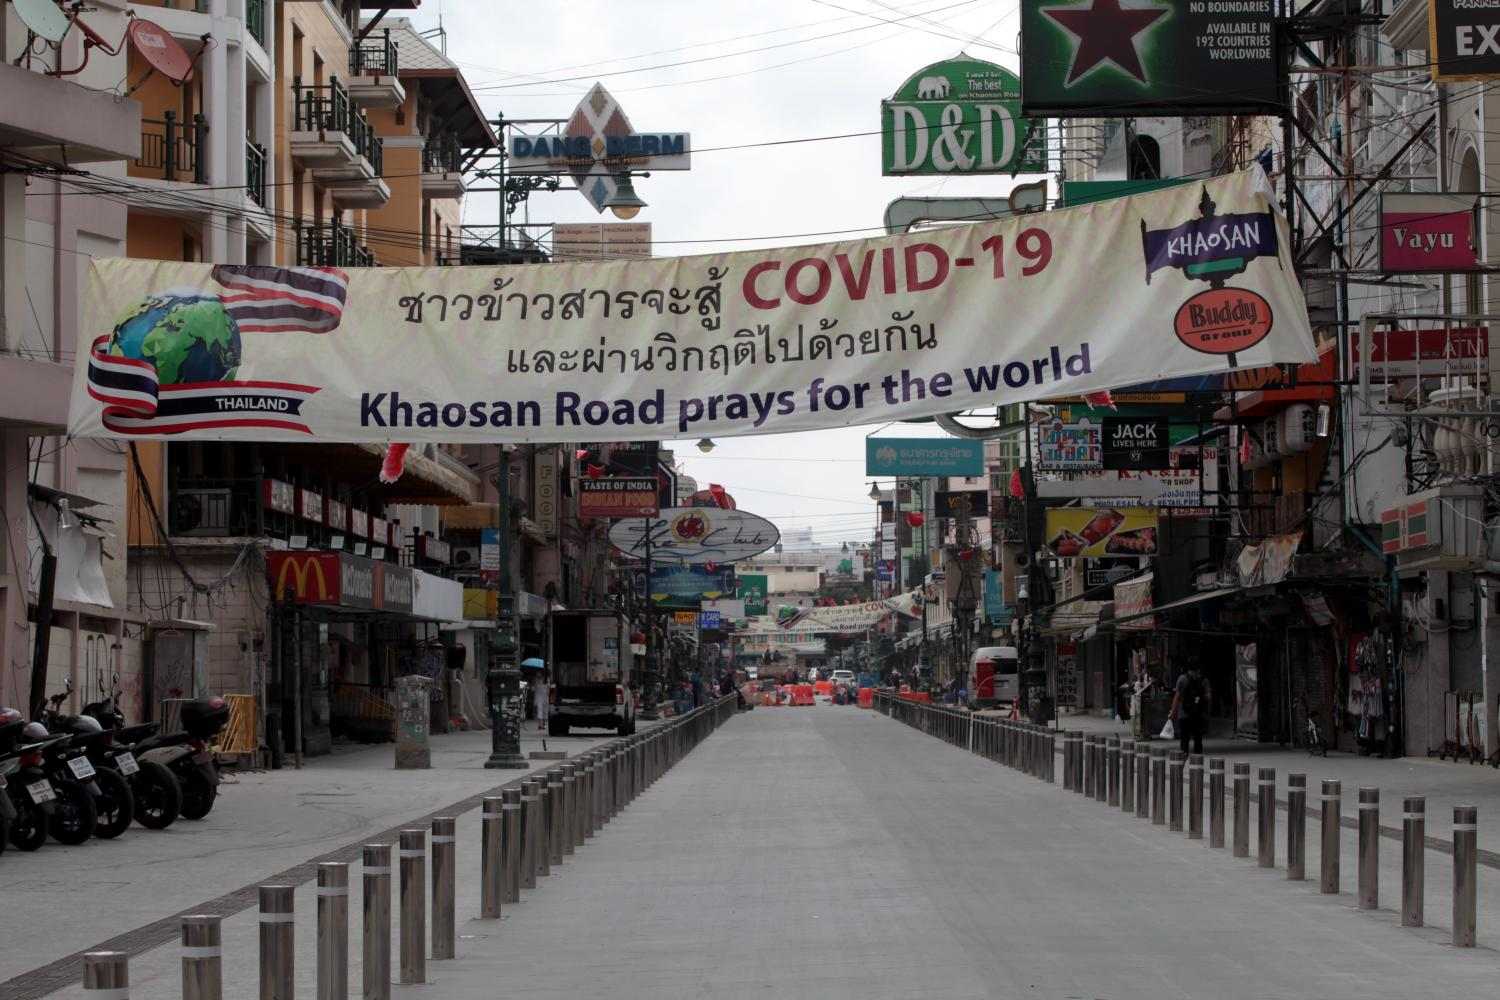 A sign has gone up at deserted Khao San Road as the prolonged coronavirus crisis leads to economic stagnation around the world. Chanat Katanyu